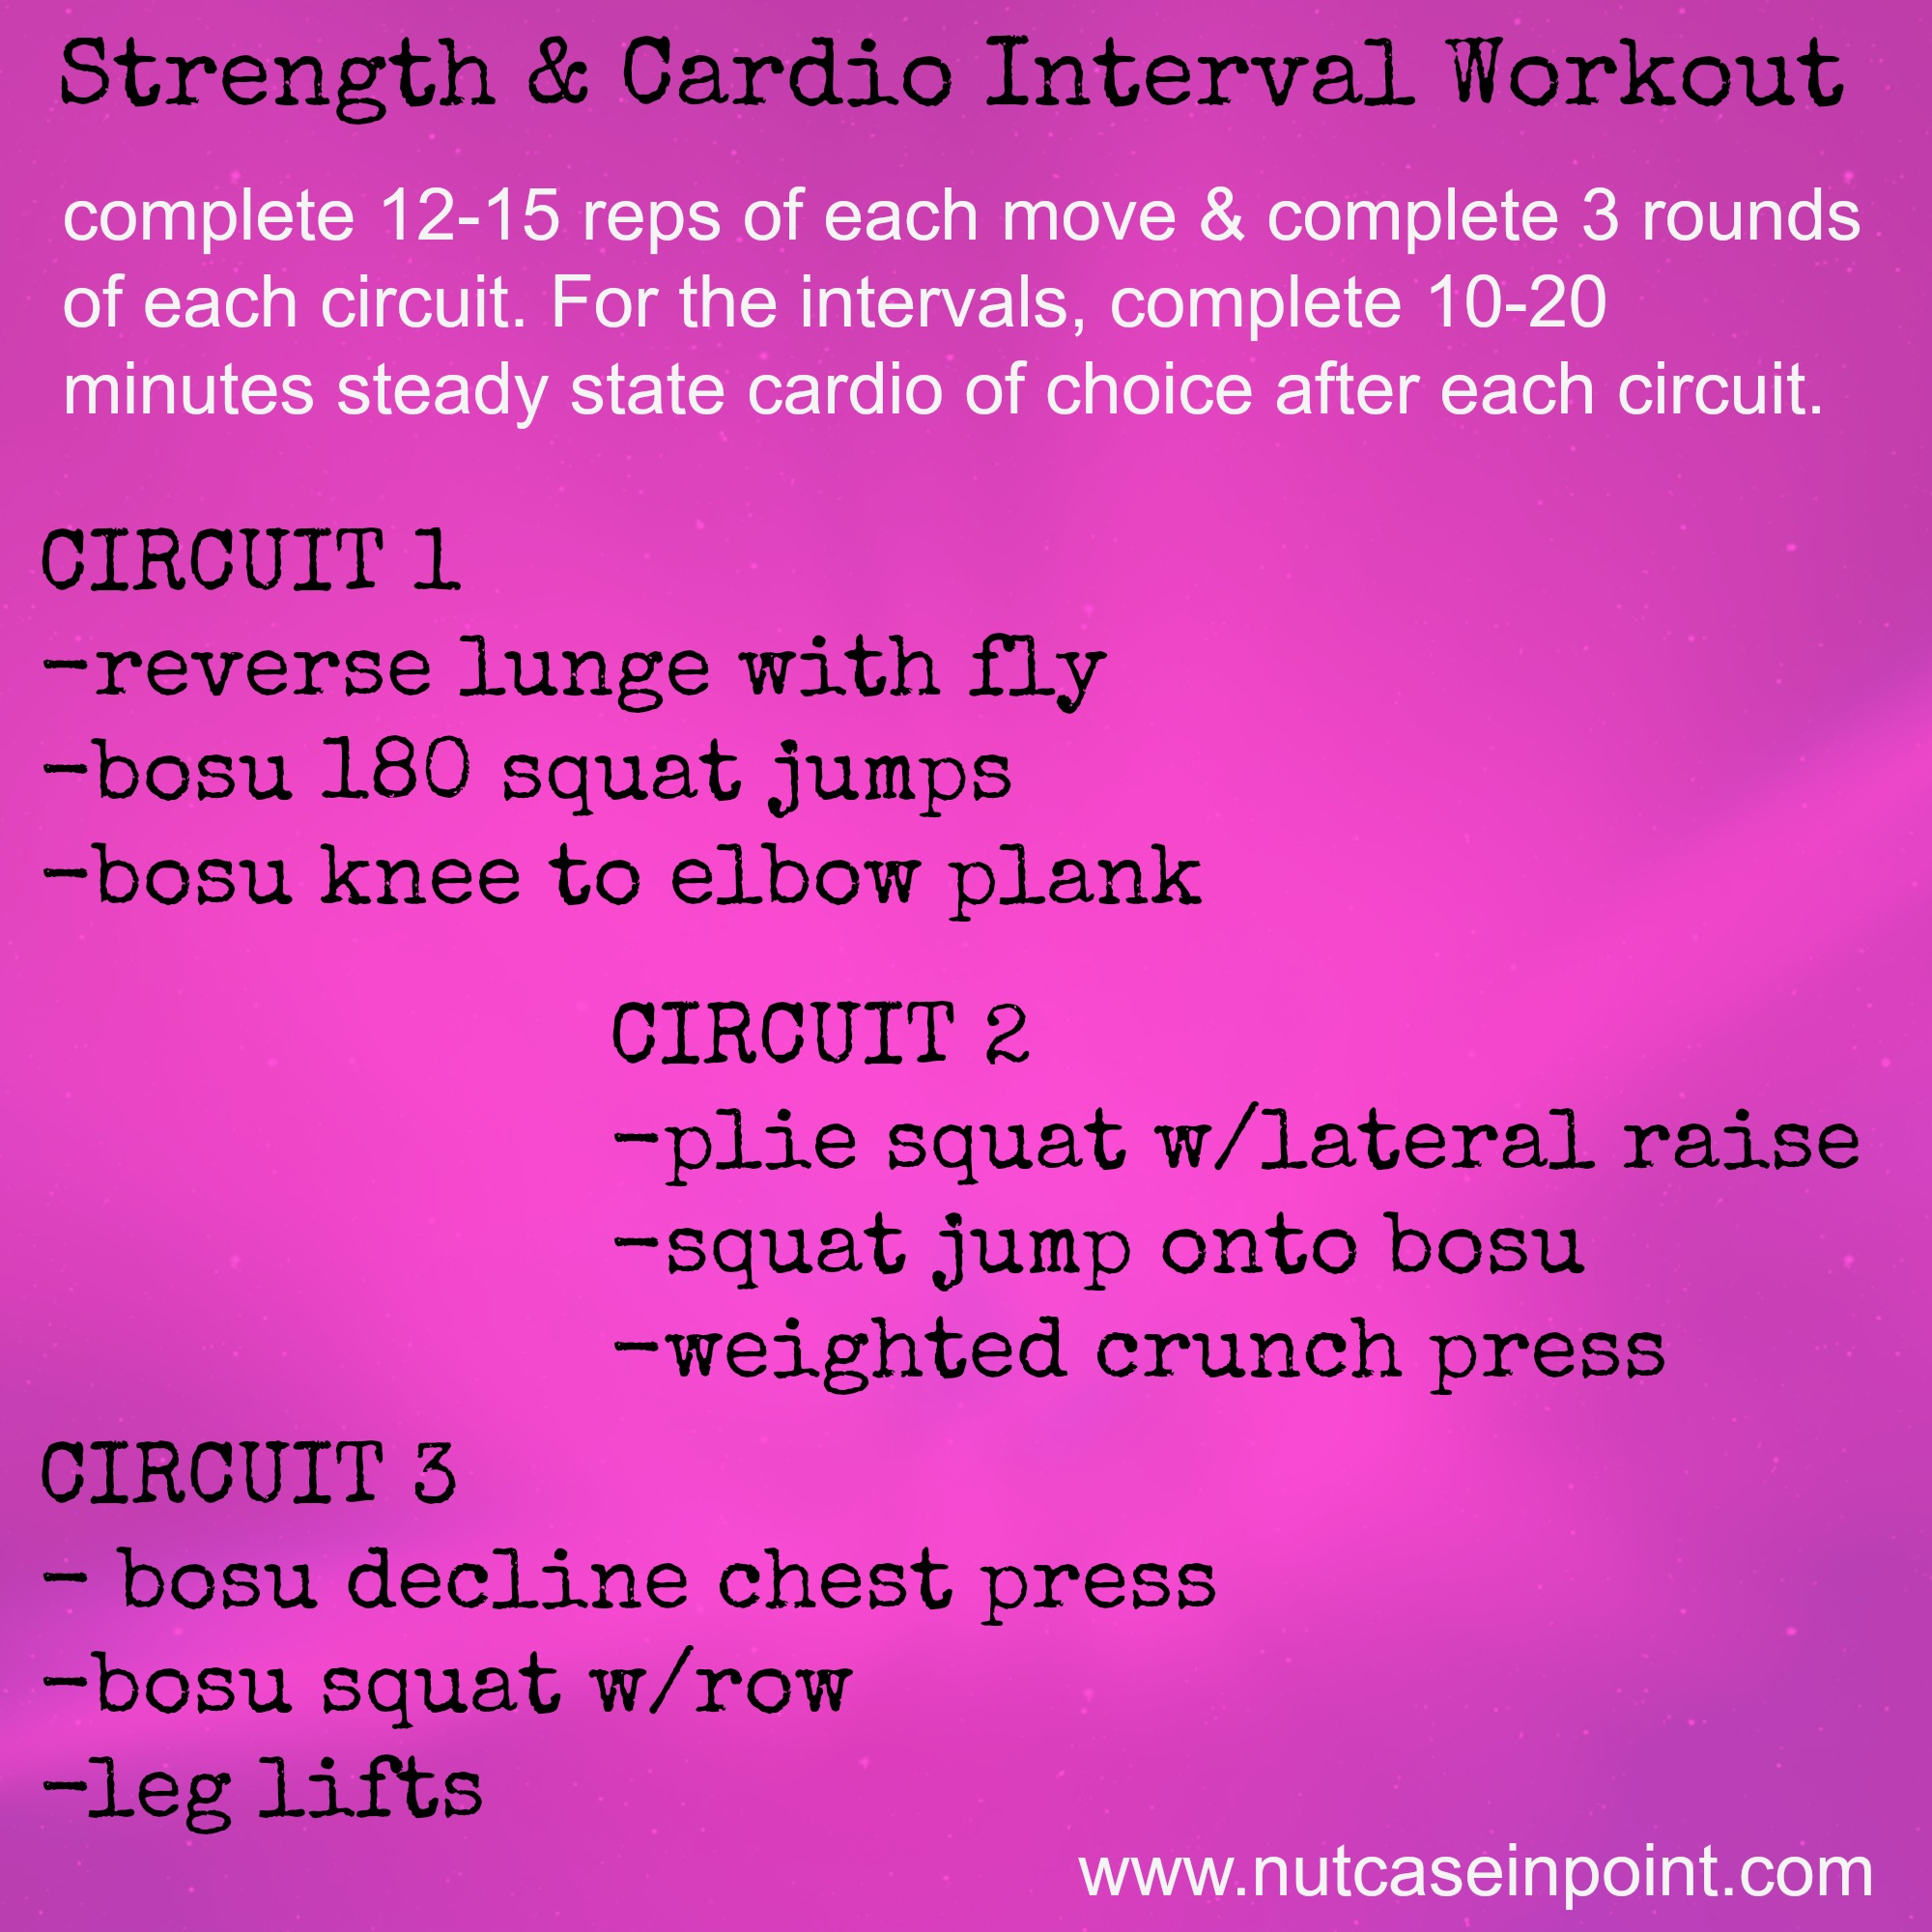 Meal Plan Nutcaseinpoint Superset Style Circuit Bootcamp Workout Ideas Image